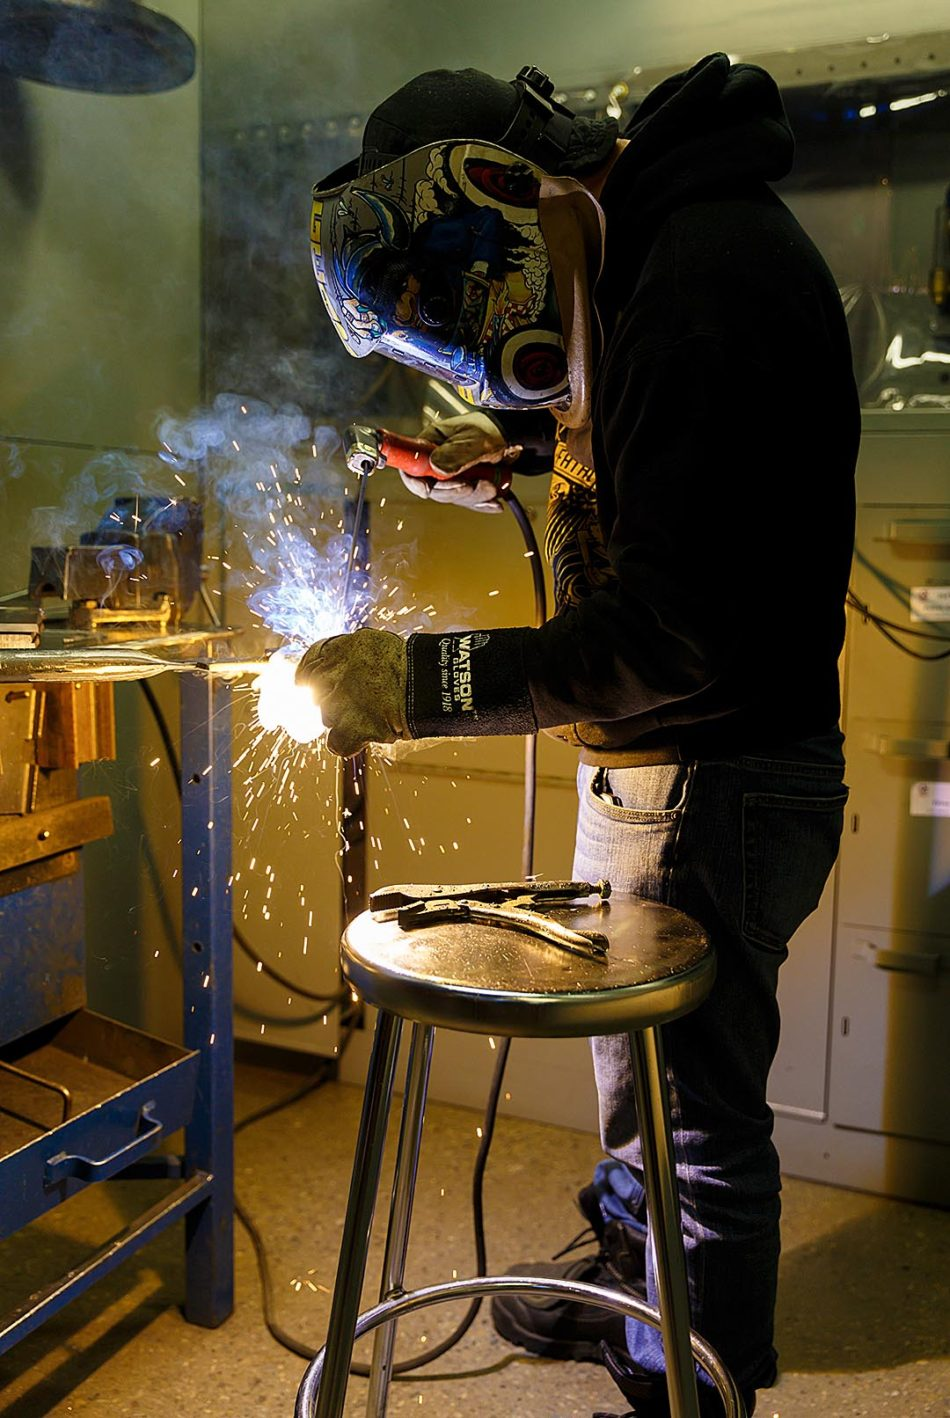 Sparks Fly: Efren Flores works on a welding project during class in the Aldred Centre at SAIT in Calgary on Thursday, Feb. 16, 2017. Flores is a first year student with a graduation date set for June 2018. Welding is a 24 week program at SAIT that allows students to get hands on experience with joining and severing metals, as well as learning about the various processes and tools used in the welding industry. (Photo by Dawn Gibson/The Press)